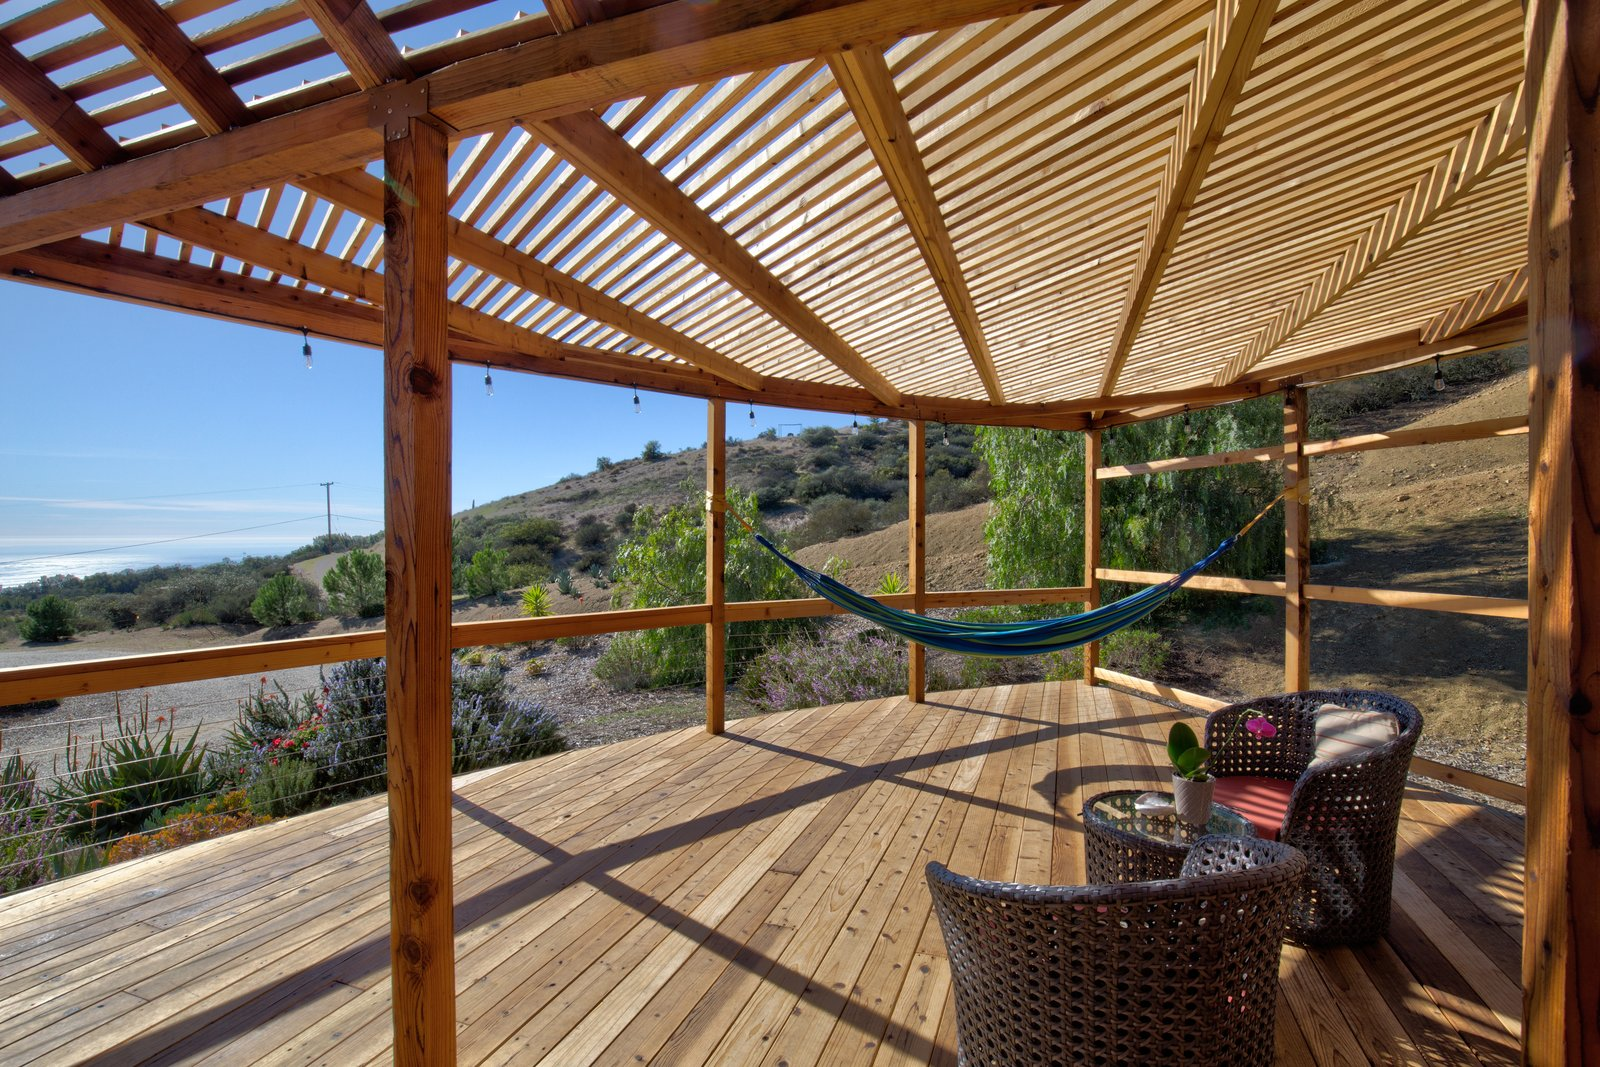 The deck has multiple lounge spaces, including two hammocks, and would make for an inspiring, open-air yoga studio.